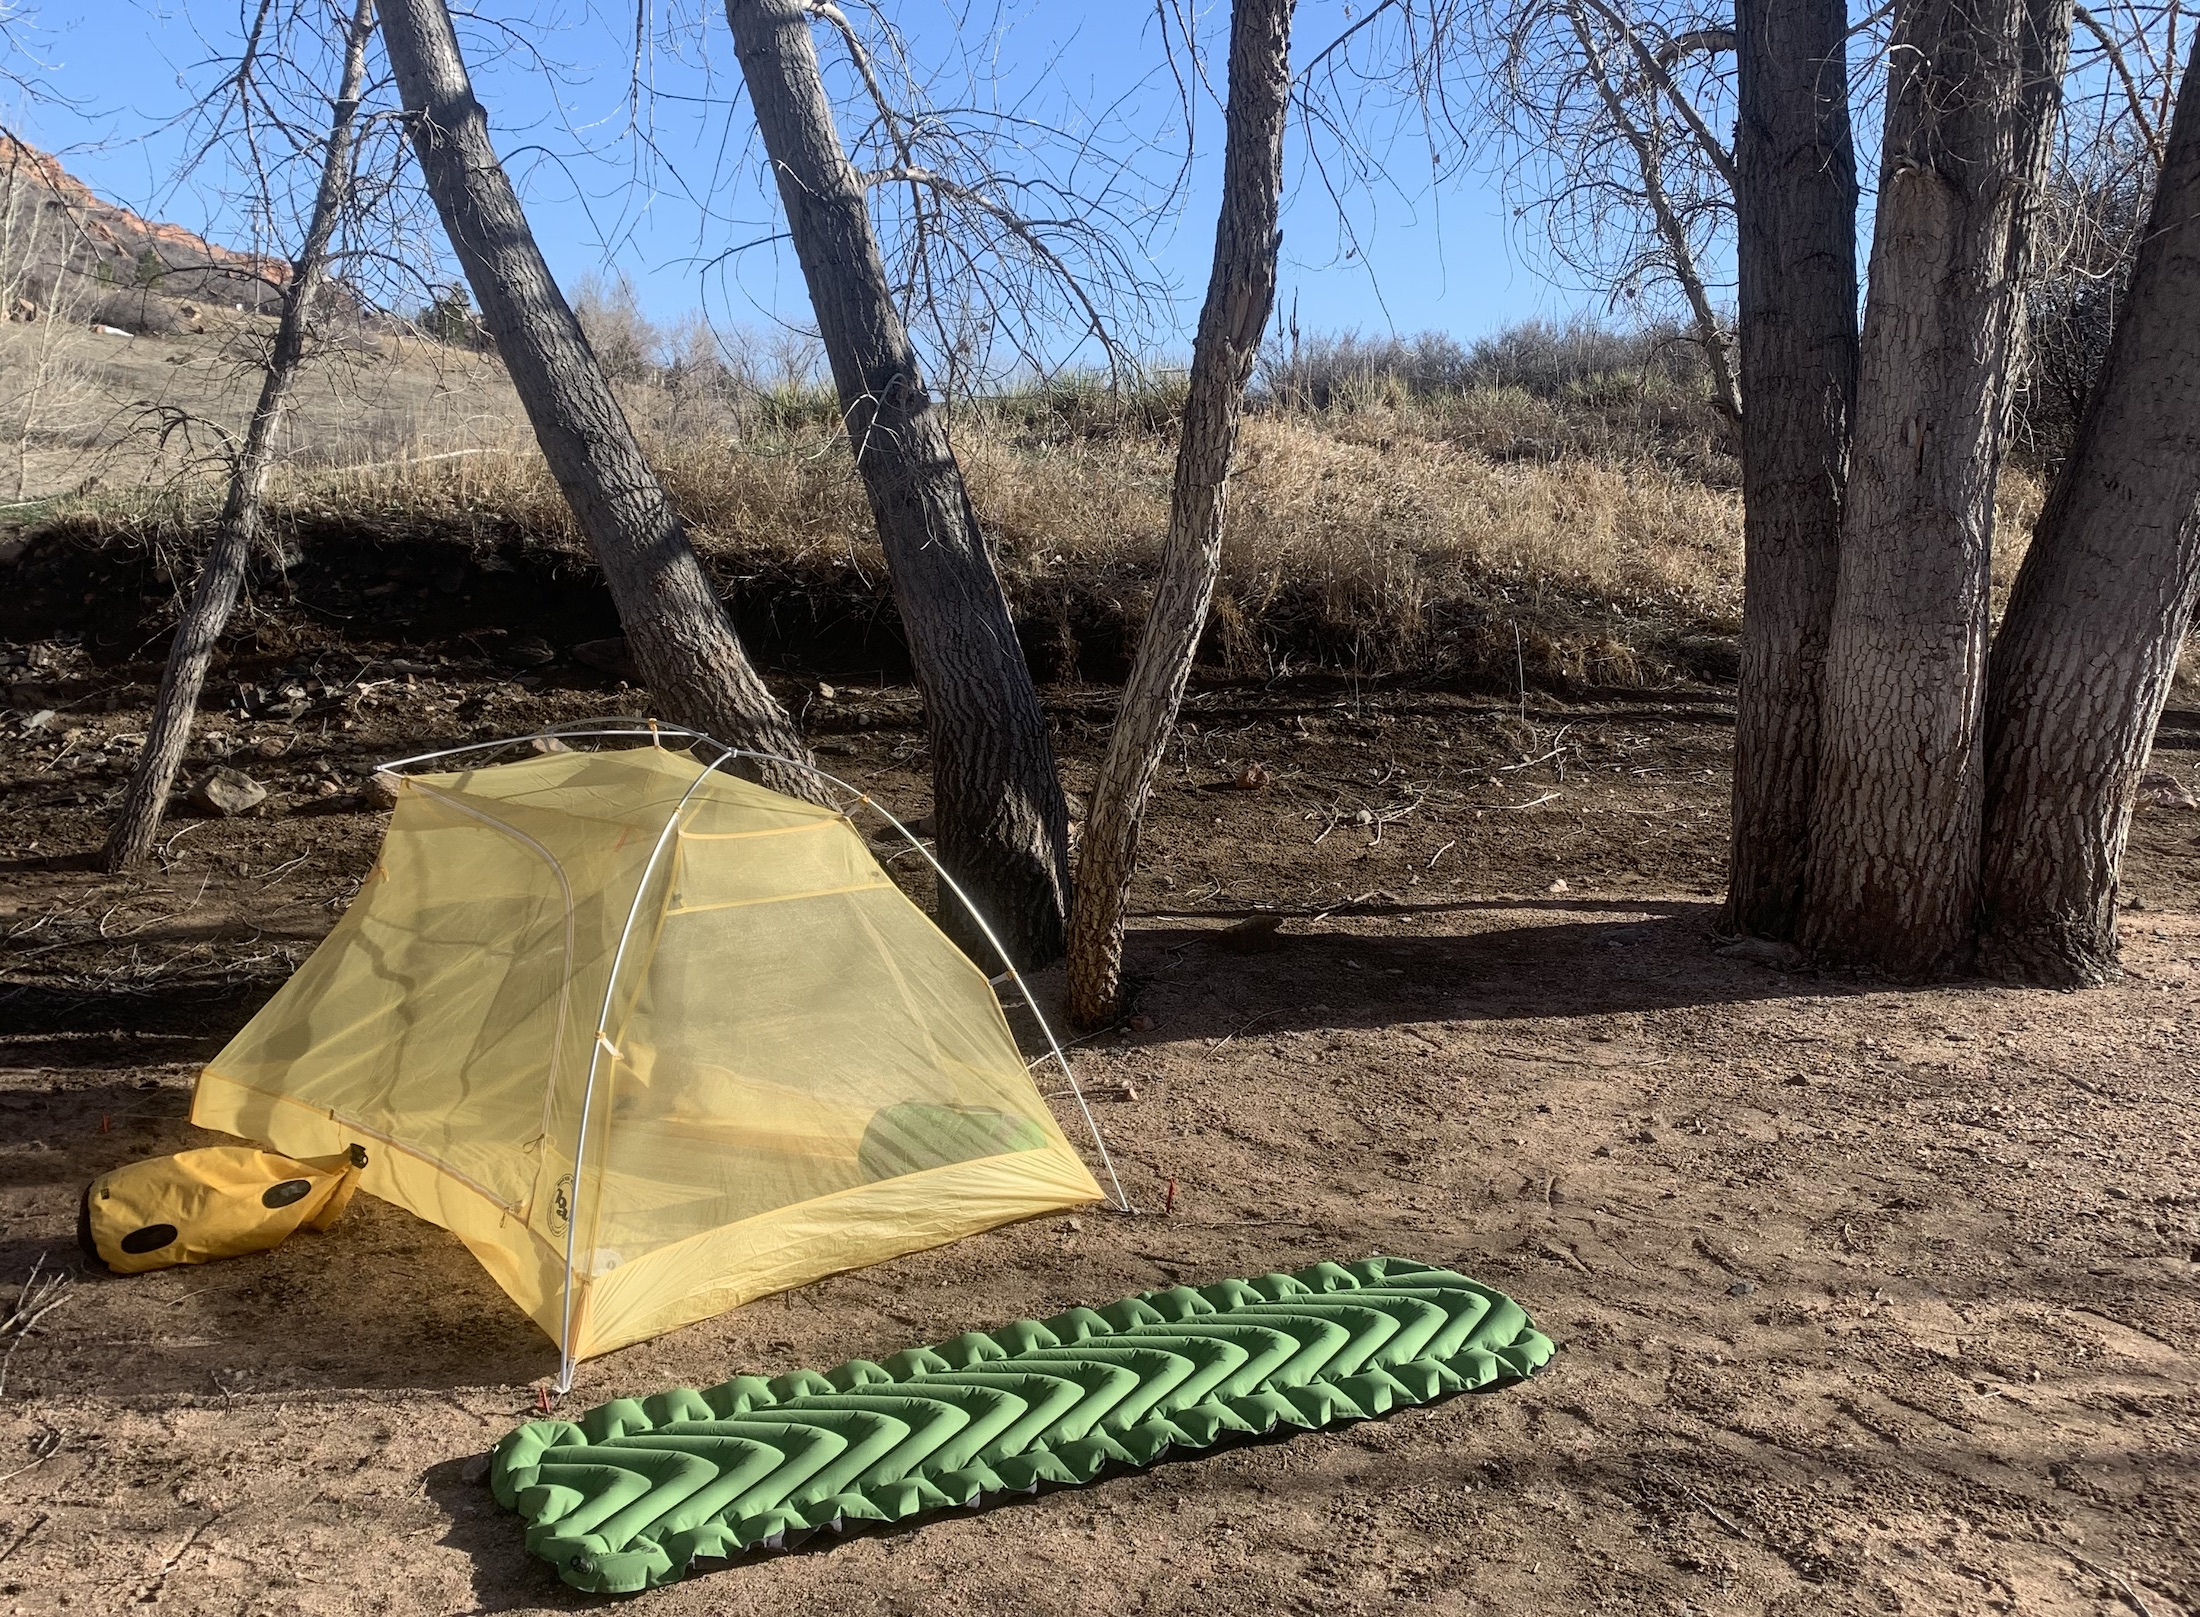 big agnes tiger wall UL tent body pitched with sleeping pad on ground